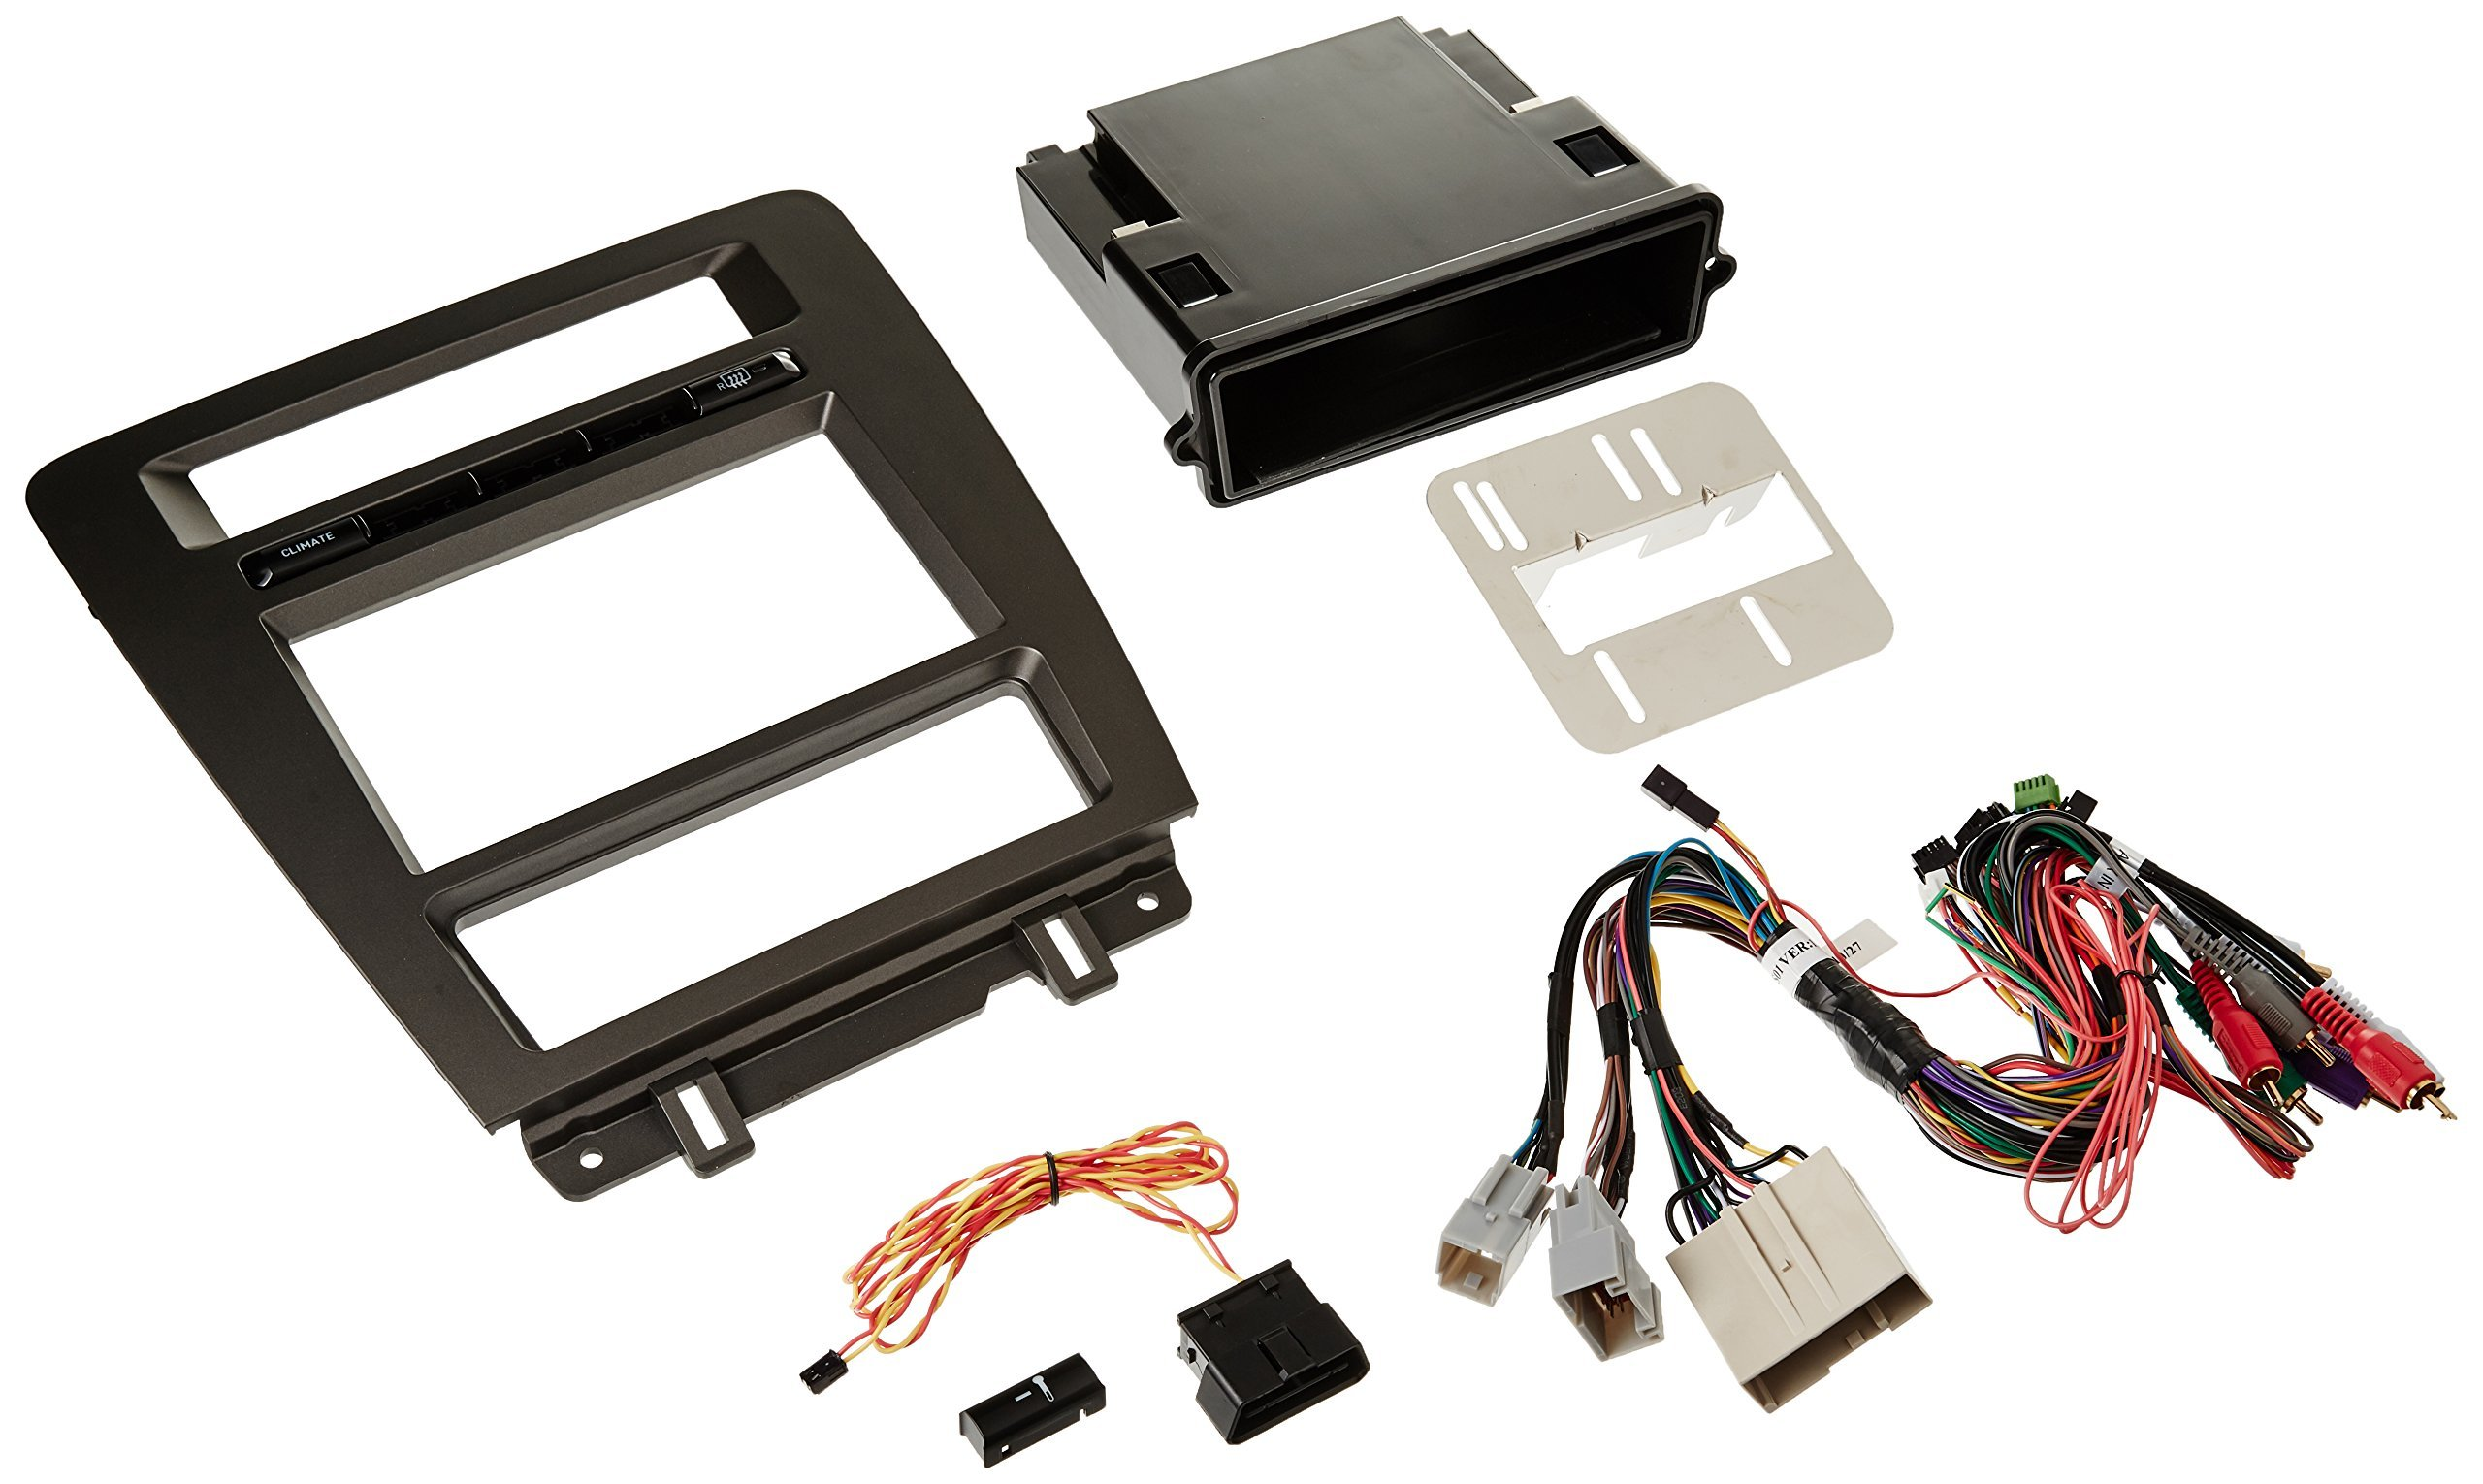 Maestro KIT-MUS1 Dash Kit and T-Harness for 2010-2014 Ford Mustangs Without Navigation by Maestro